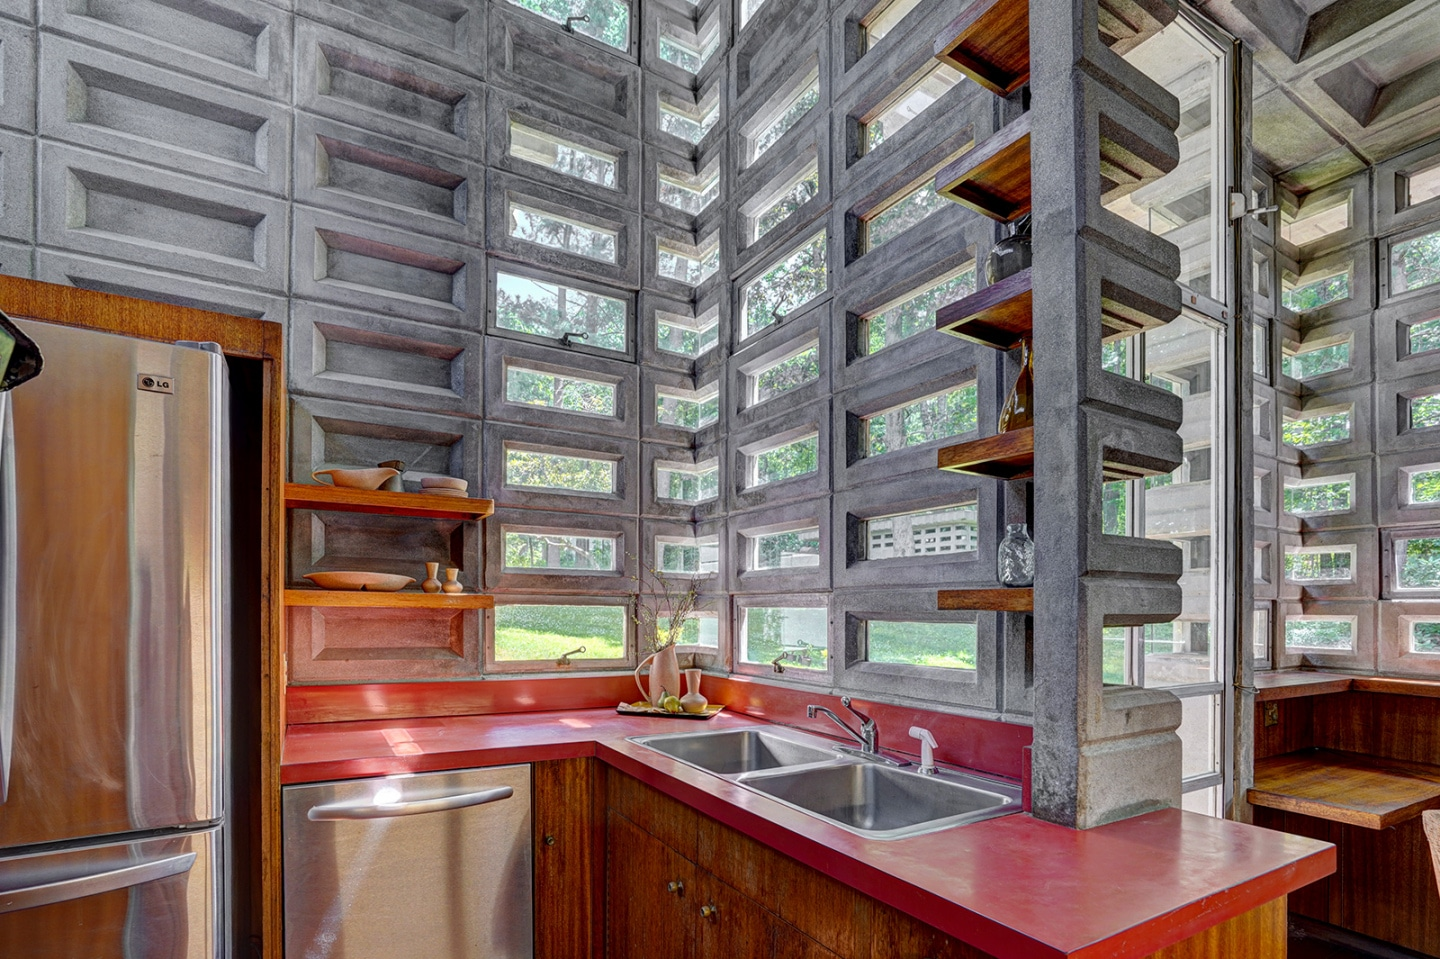 What Does It Take to Buy a Frank Lloyd Wright House?